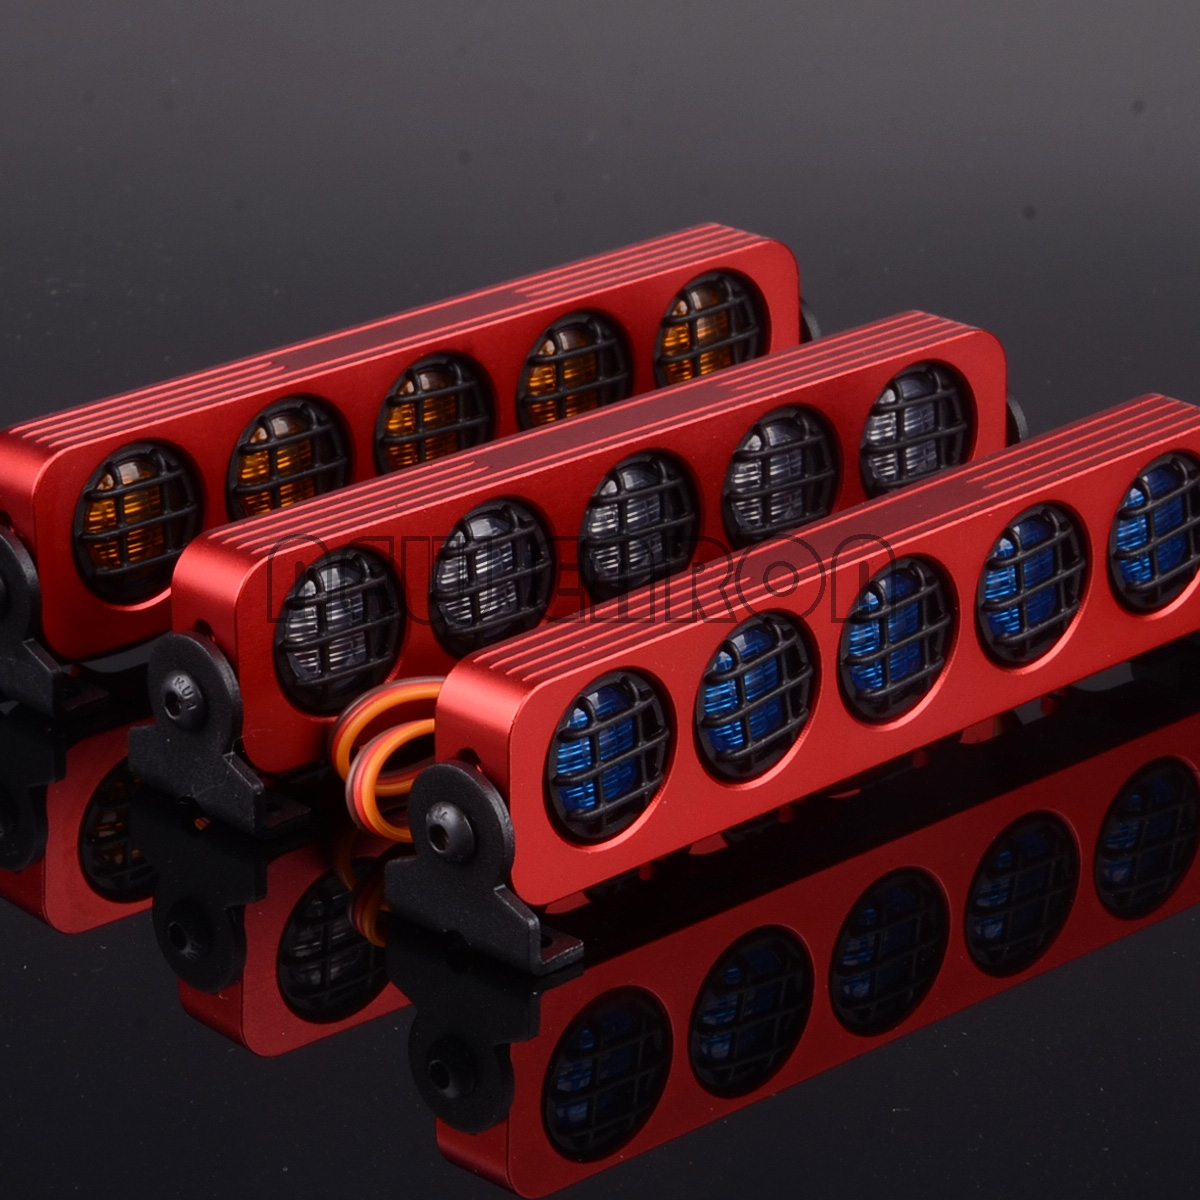 NEW ENRON Multi Function Ultra LED Light Bar 5 Modes RC 1/10 1/8 For D90 SXC10 4WD AX-509 1:10